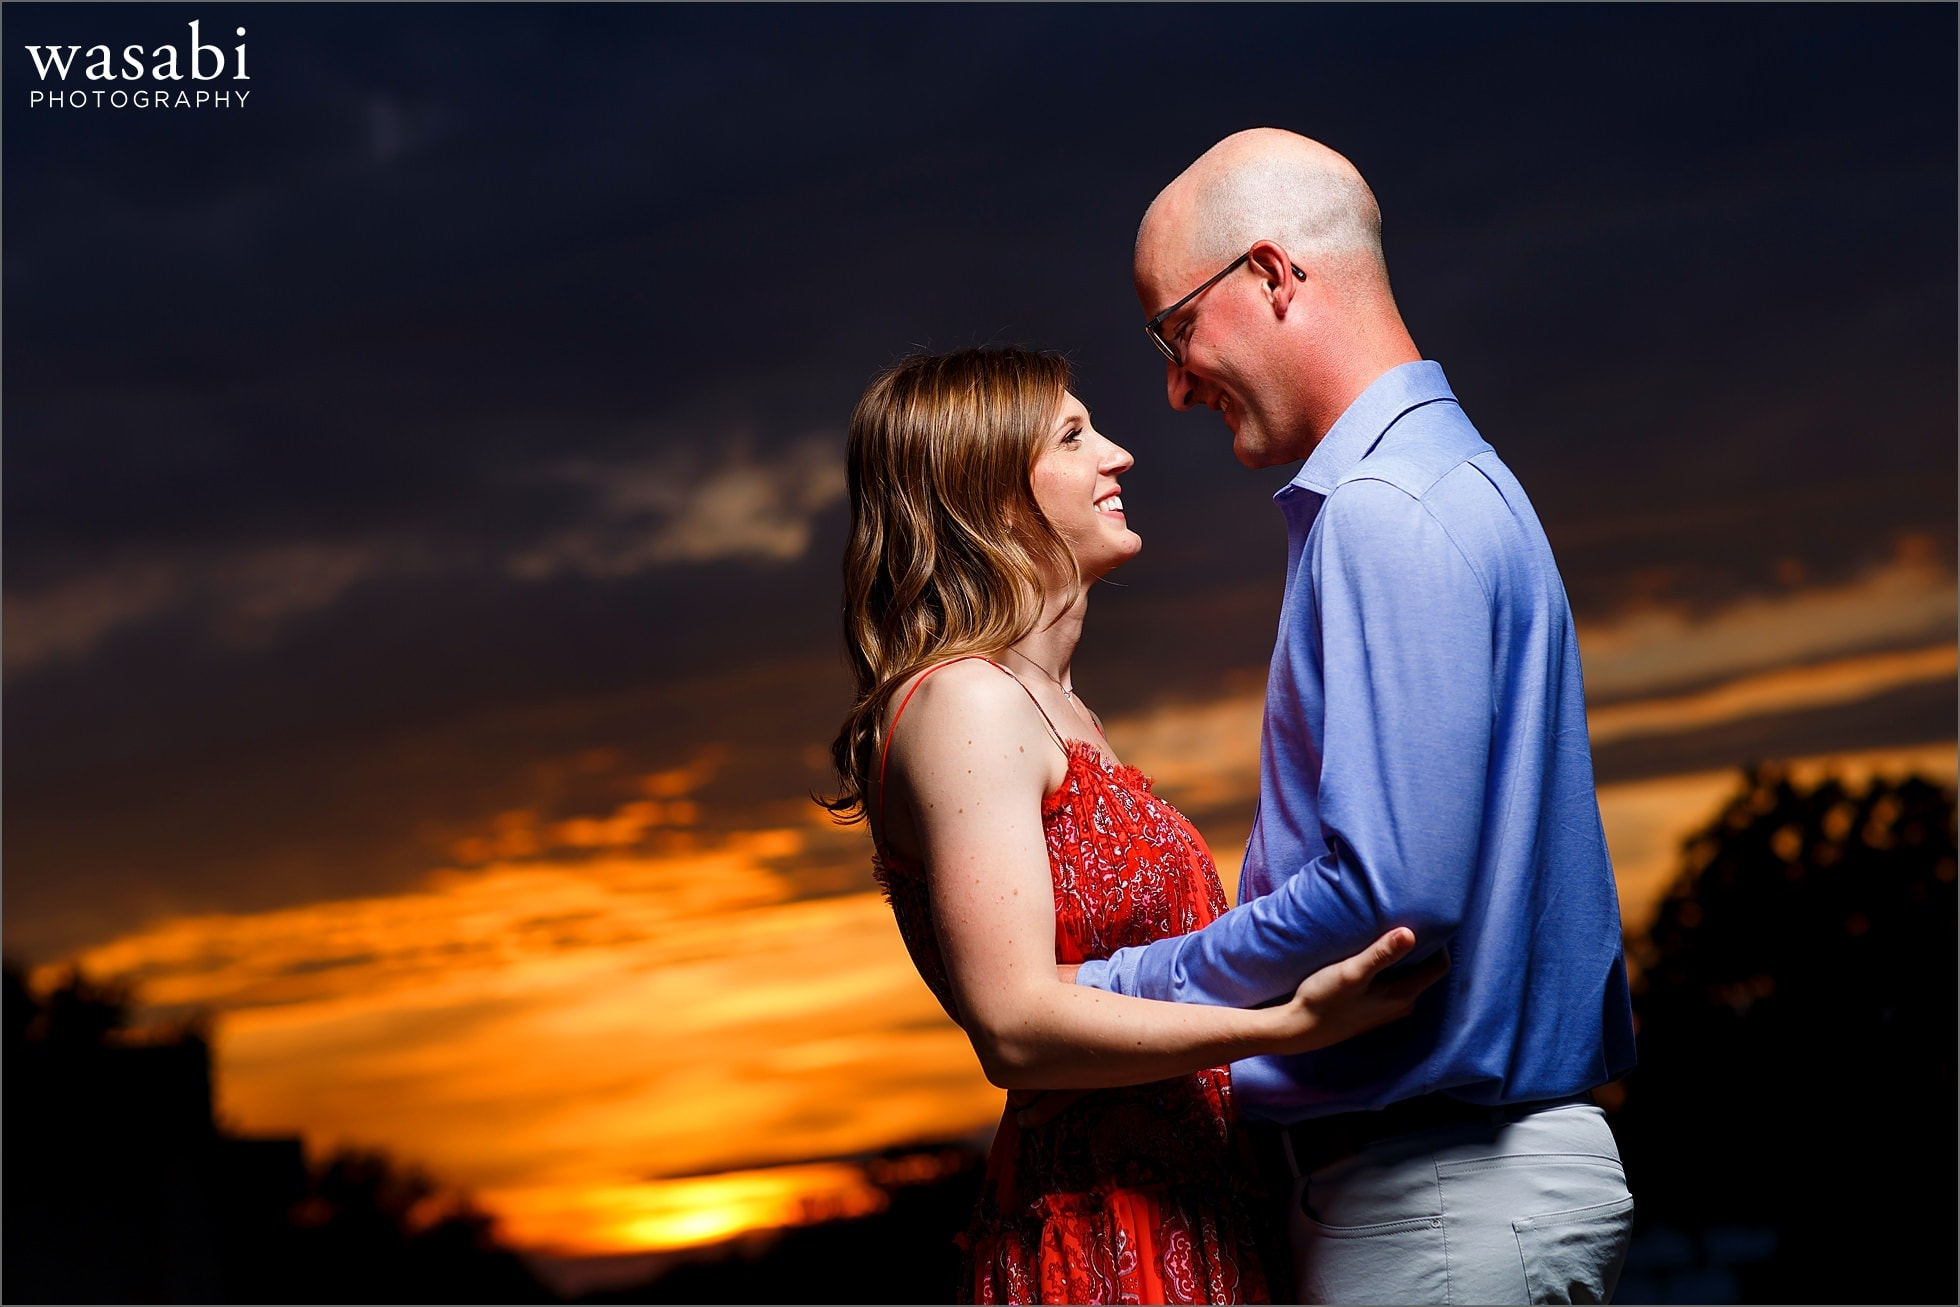 couple poses with sunset in the background during their engagement photo session in downtown Royal Oak, Michigan